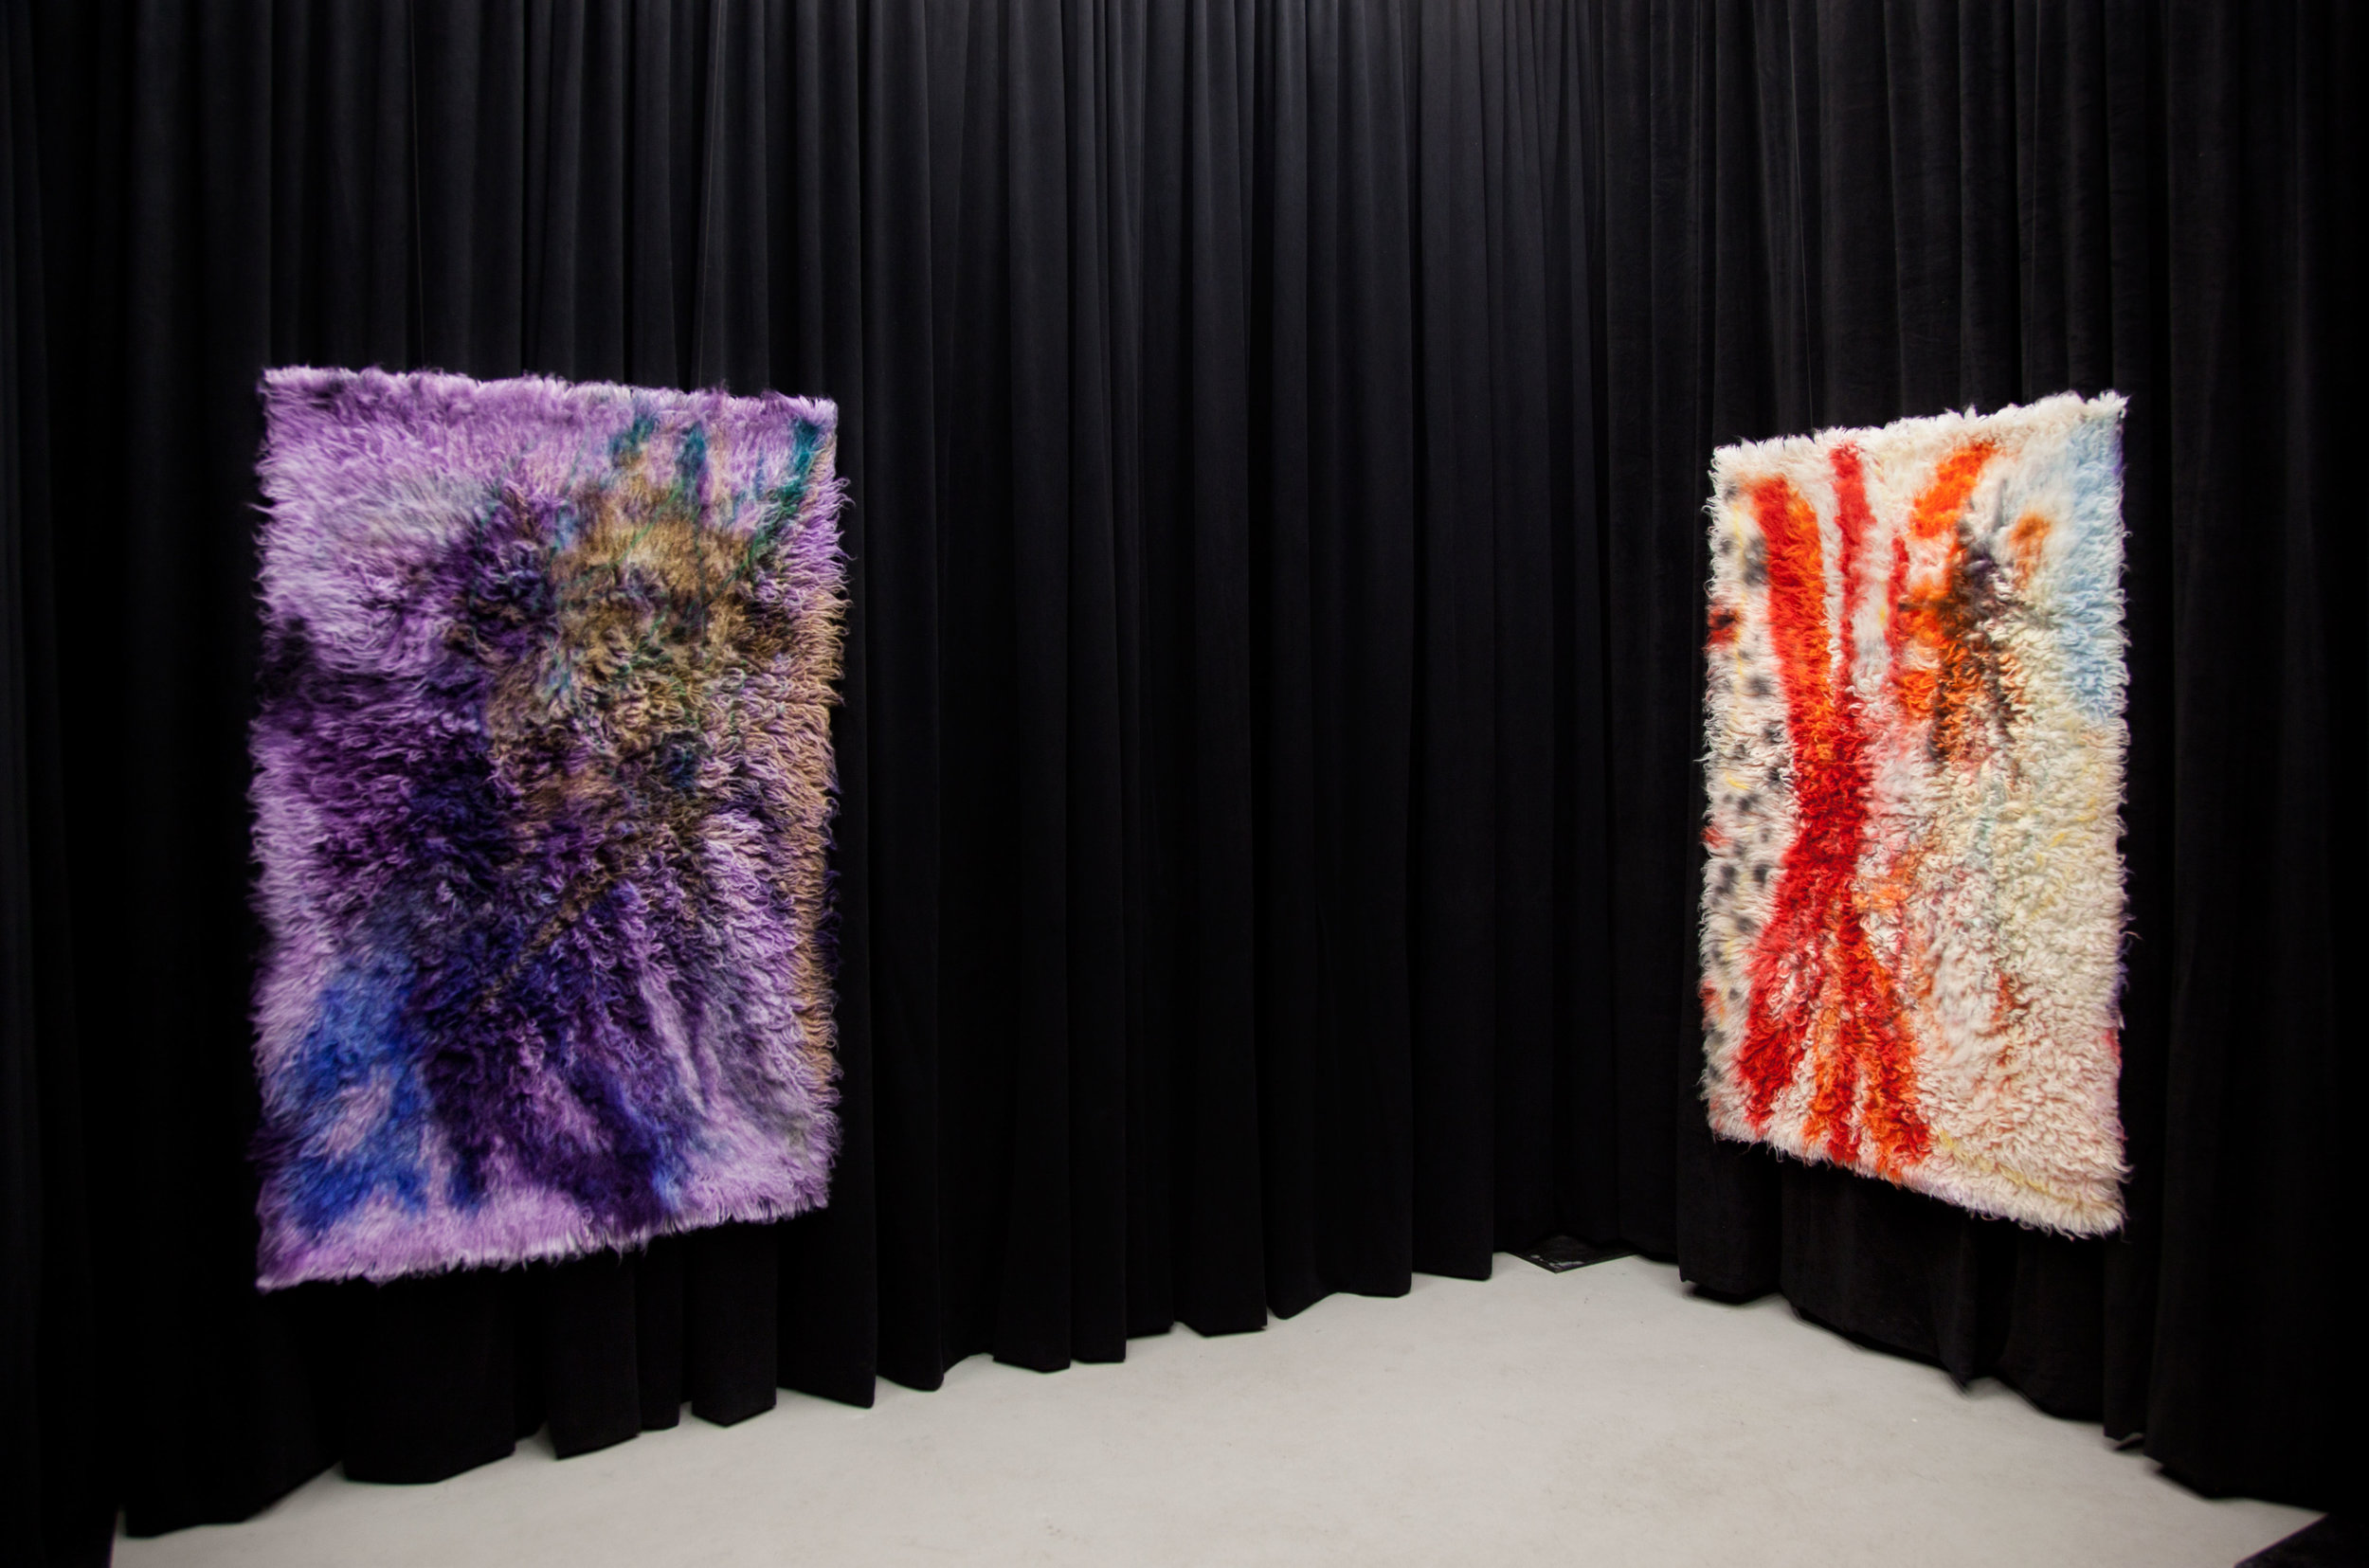 (Left)  Silver and Gold,  2017, wool rug, acid dye, hairspray, chalk. (Right)  Sticks and Stones, 2017,  wool rug, acid dye, hairspray, chalk.